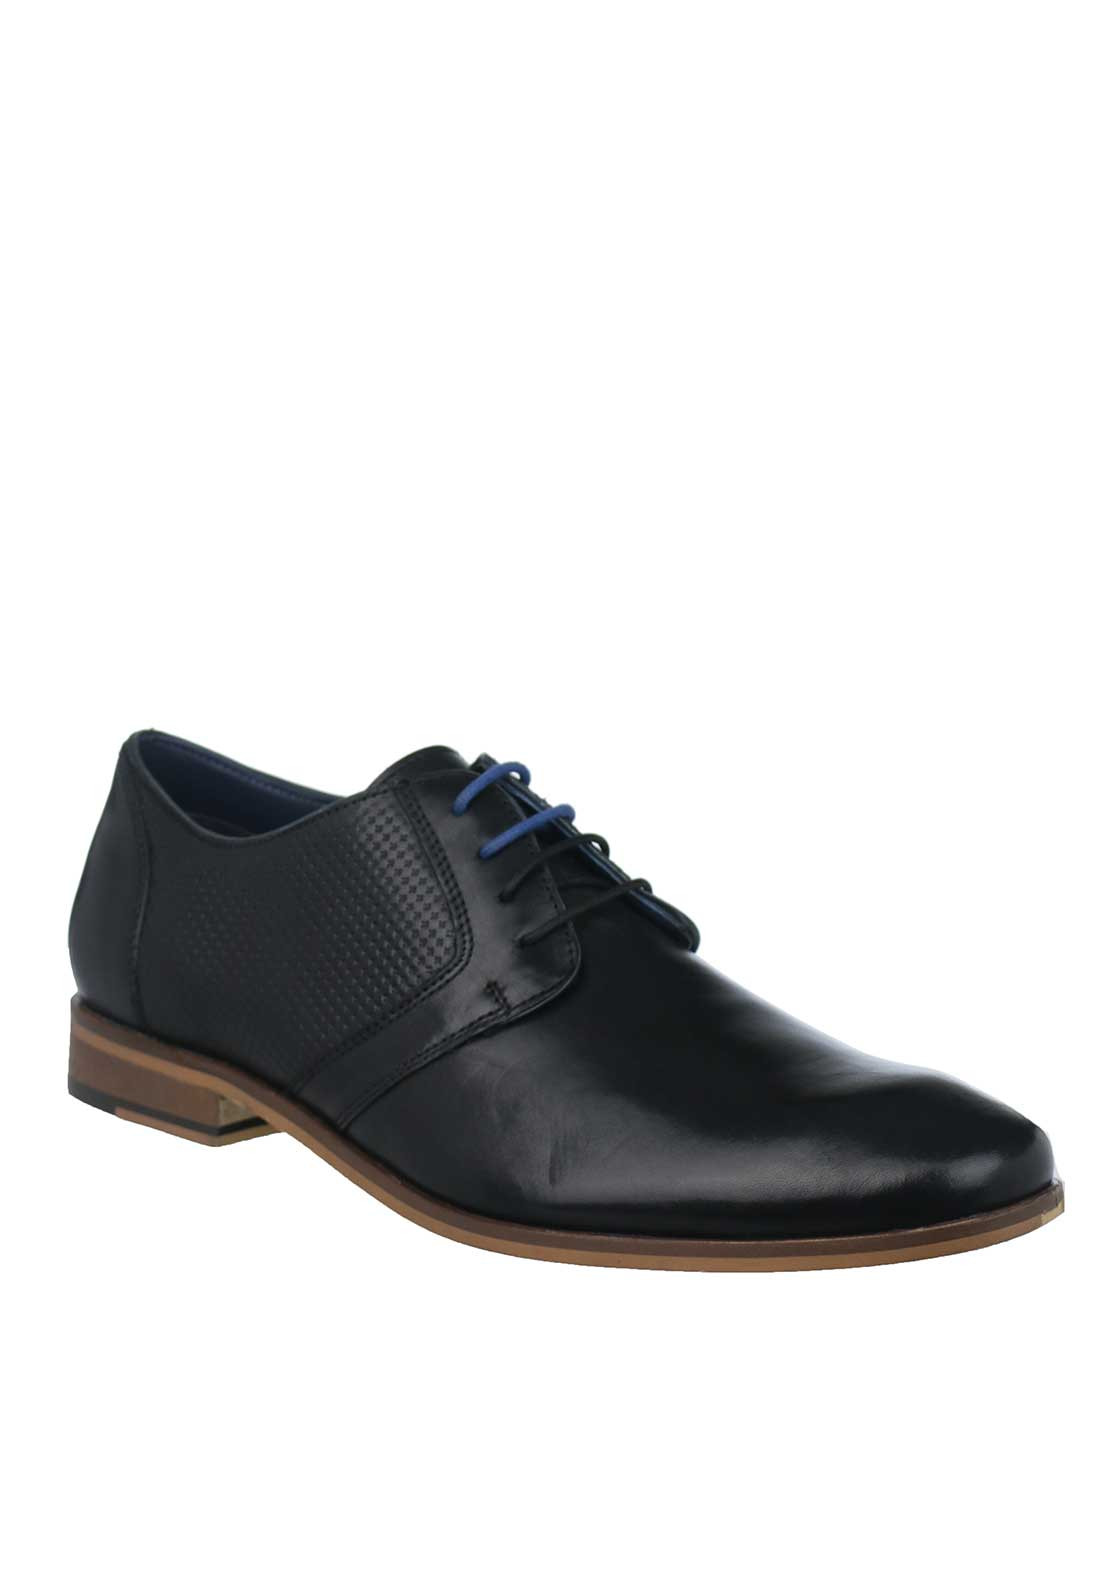 Paul O'Donnell by POD Atlanta Leather Shoes, Black